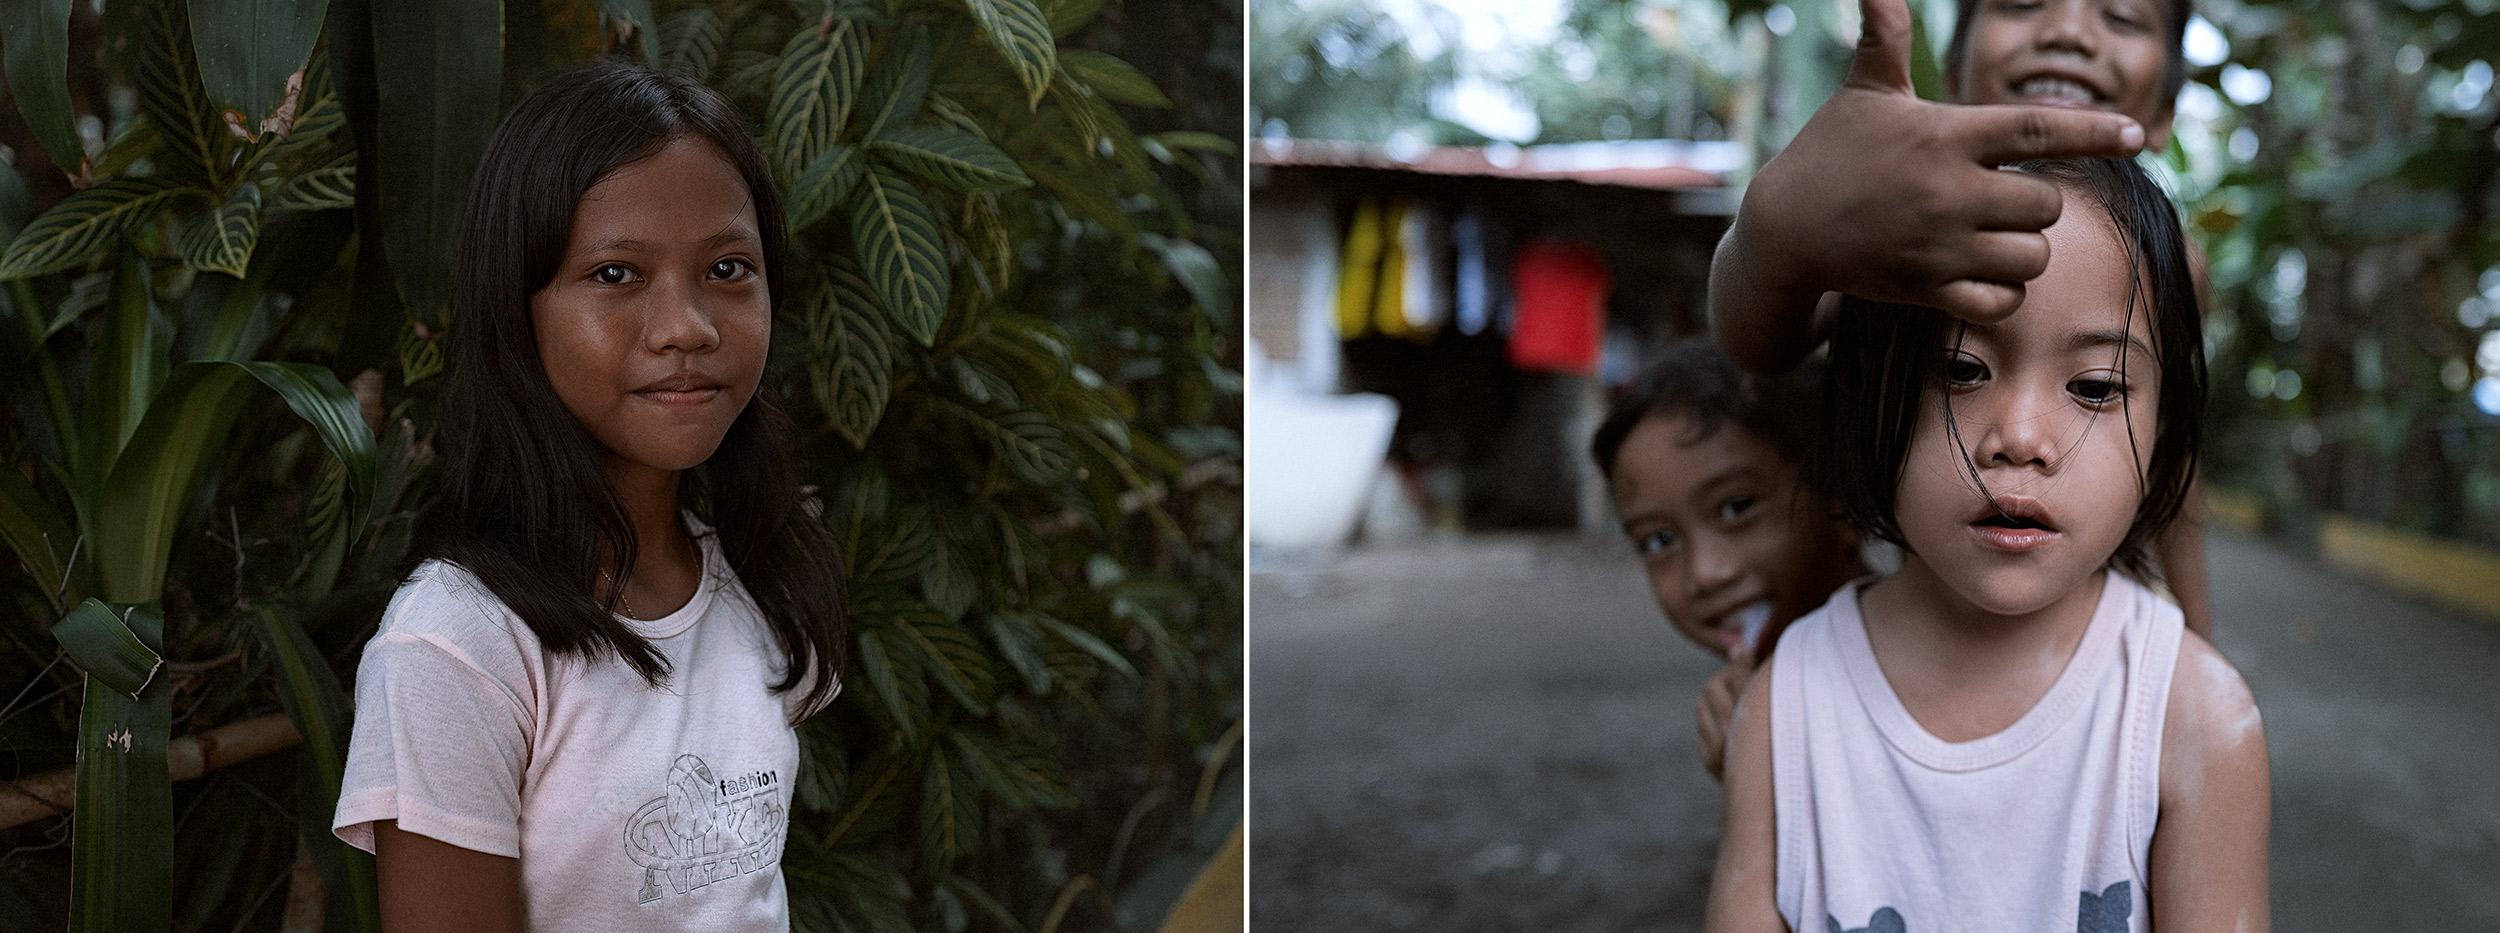 Good Boy Wolf Photographer, Philippines, young children in poverty